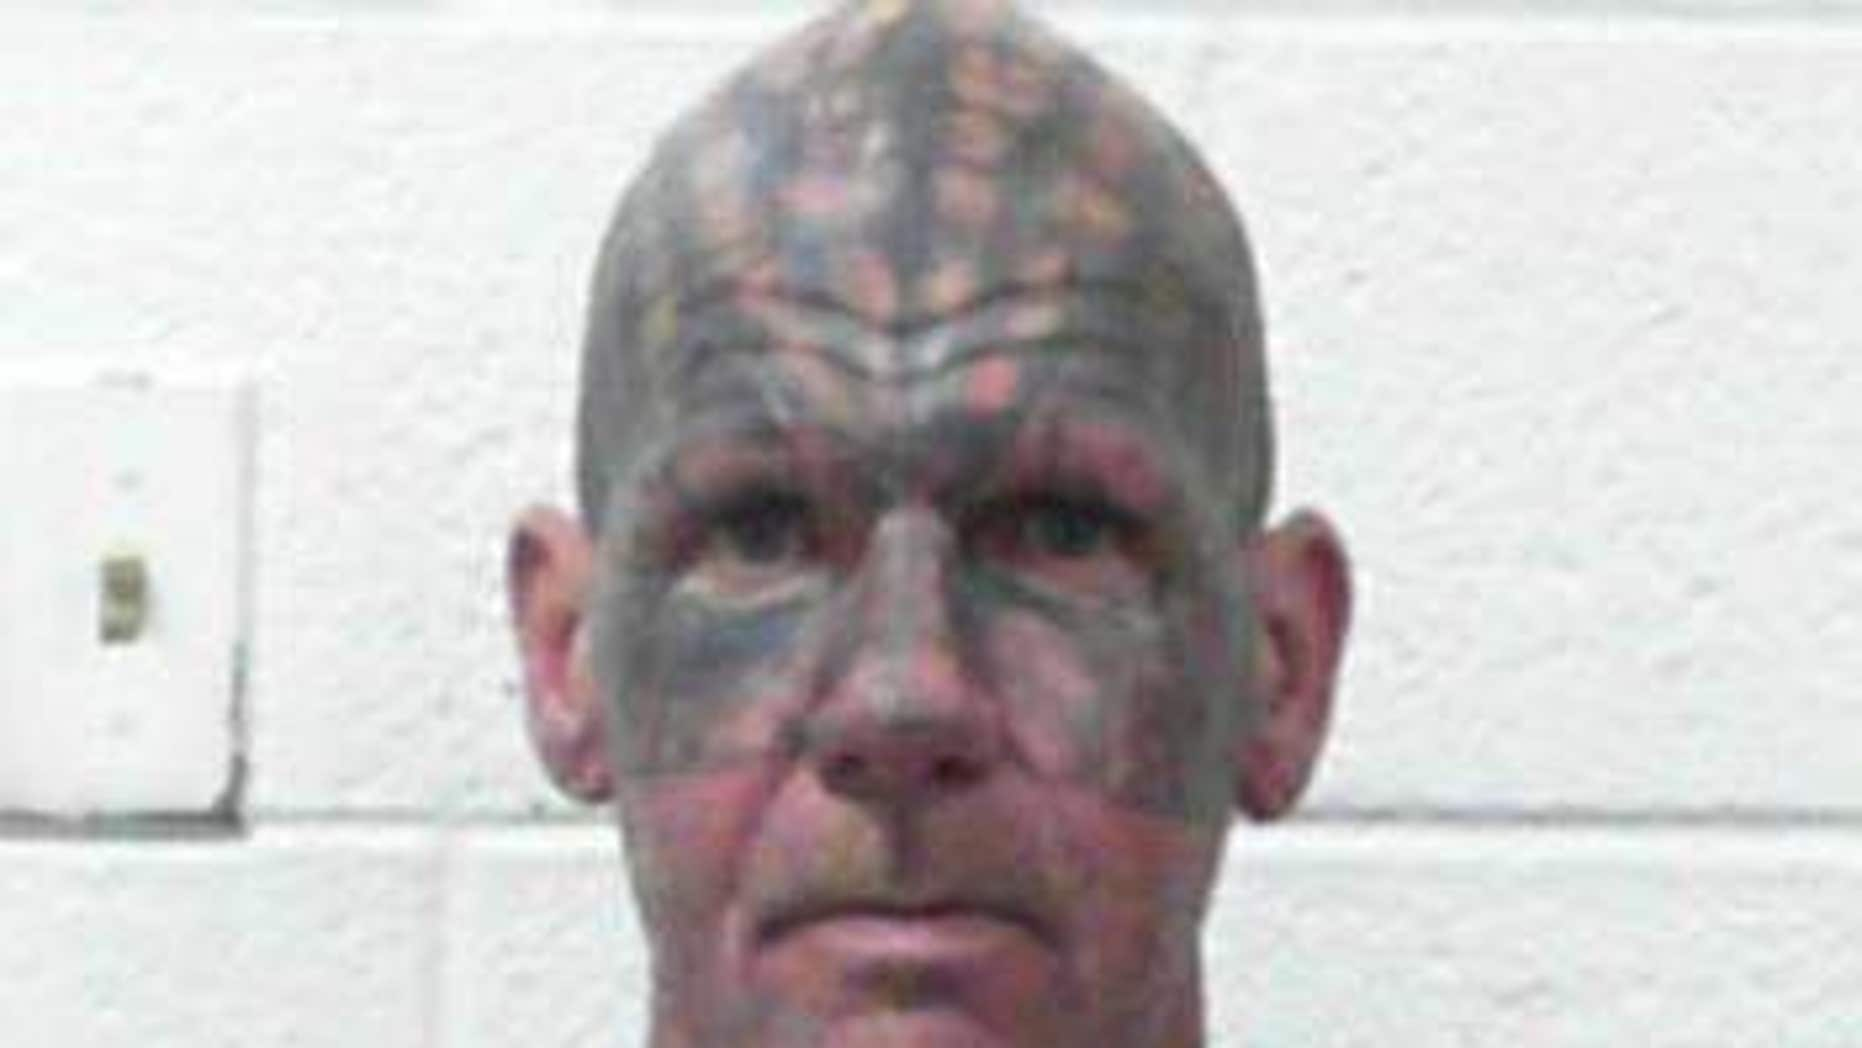 Ervin Franklin Harold, 51, allegedly held a woman against a wall and branded her multiple times, according to police.